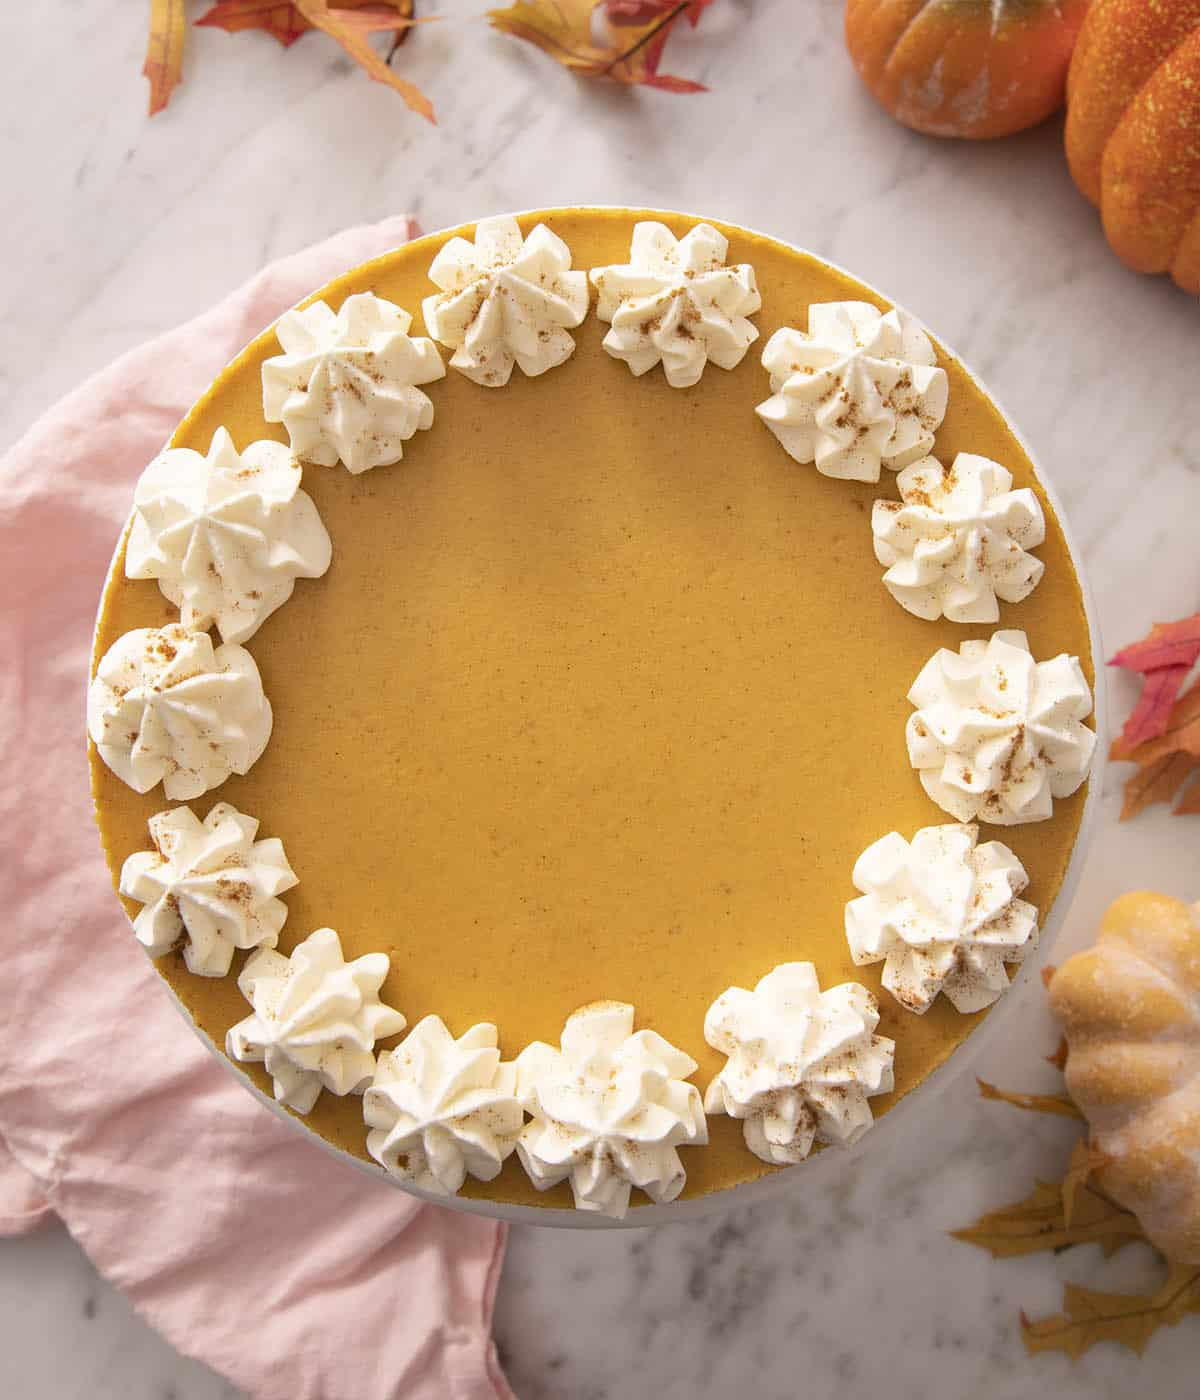 A pumpkin cheesecake with dollops of whipped cream at the edge.